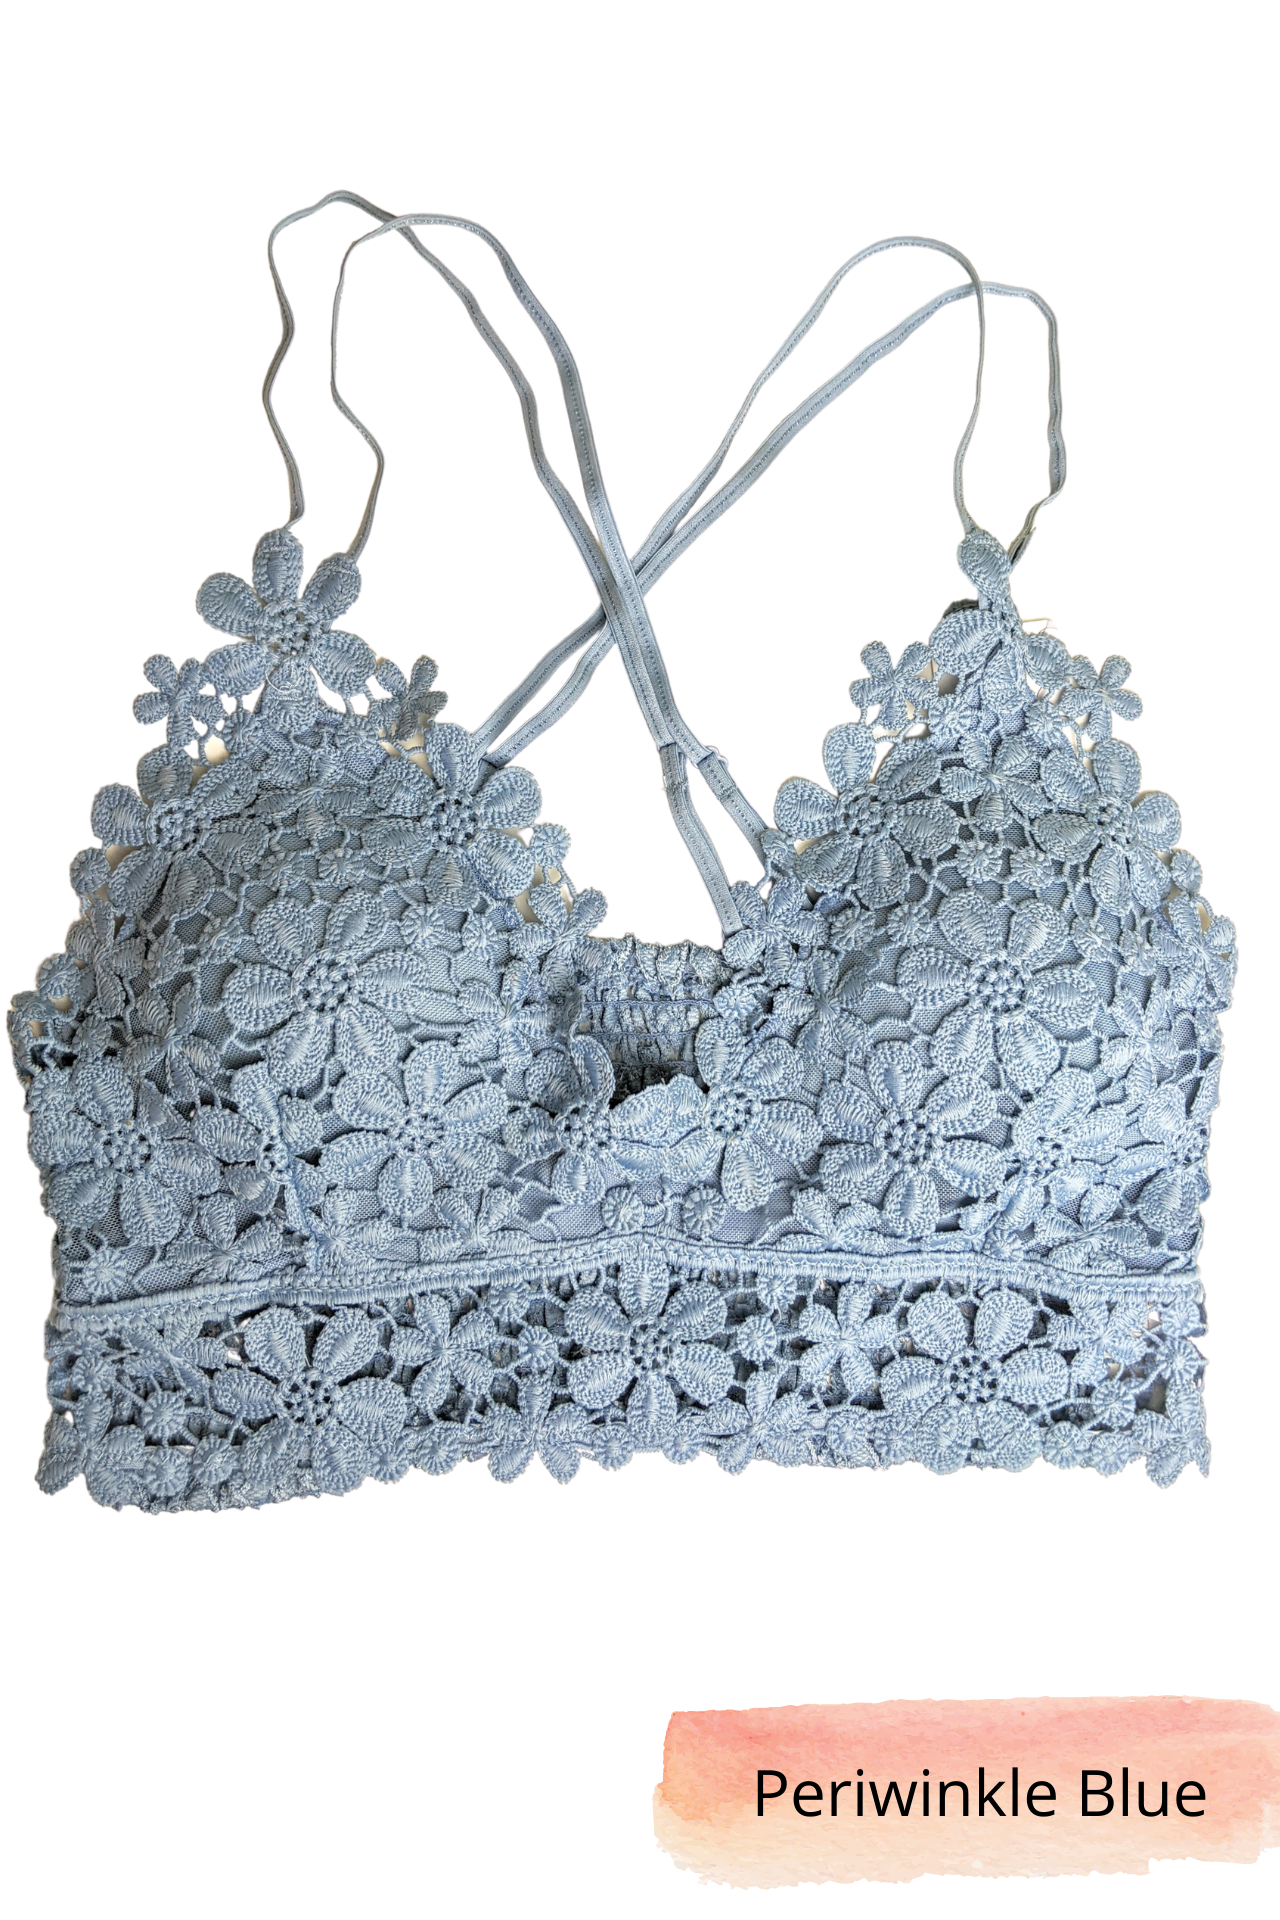 Pink Liberty Forever Daisy Floral Lace Crochet Bralette Periwinkle Blue